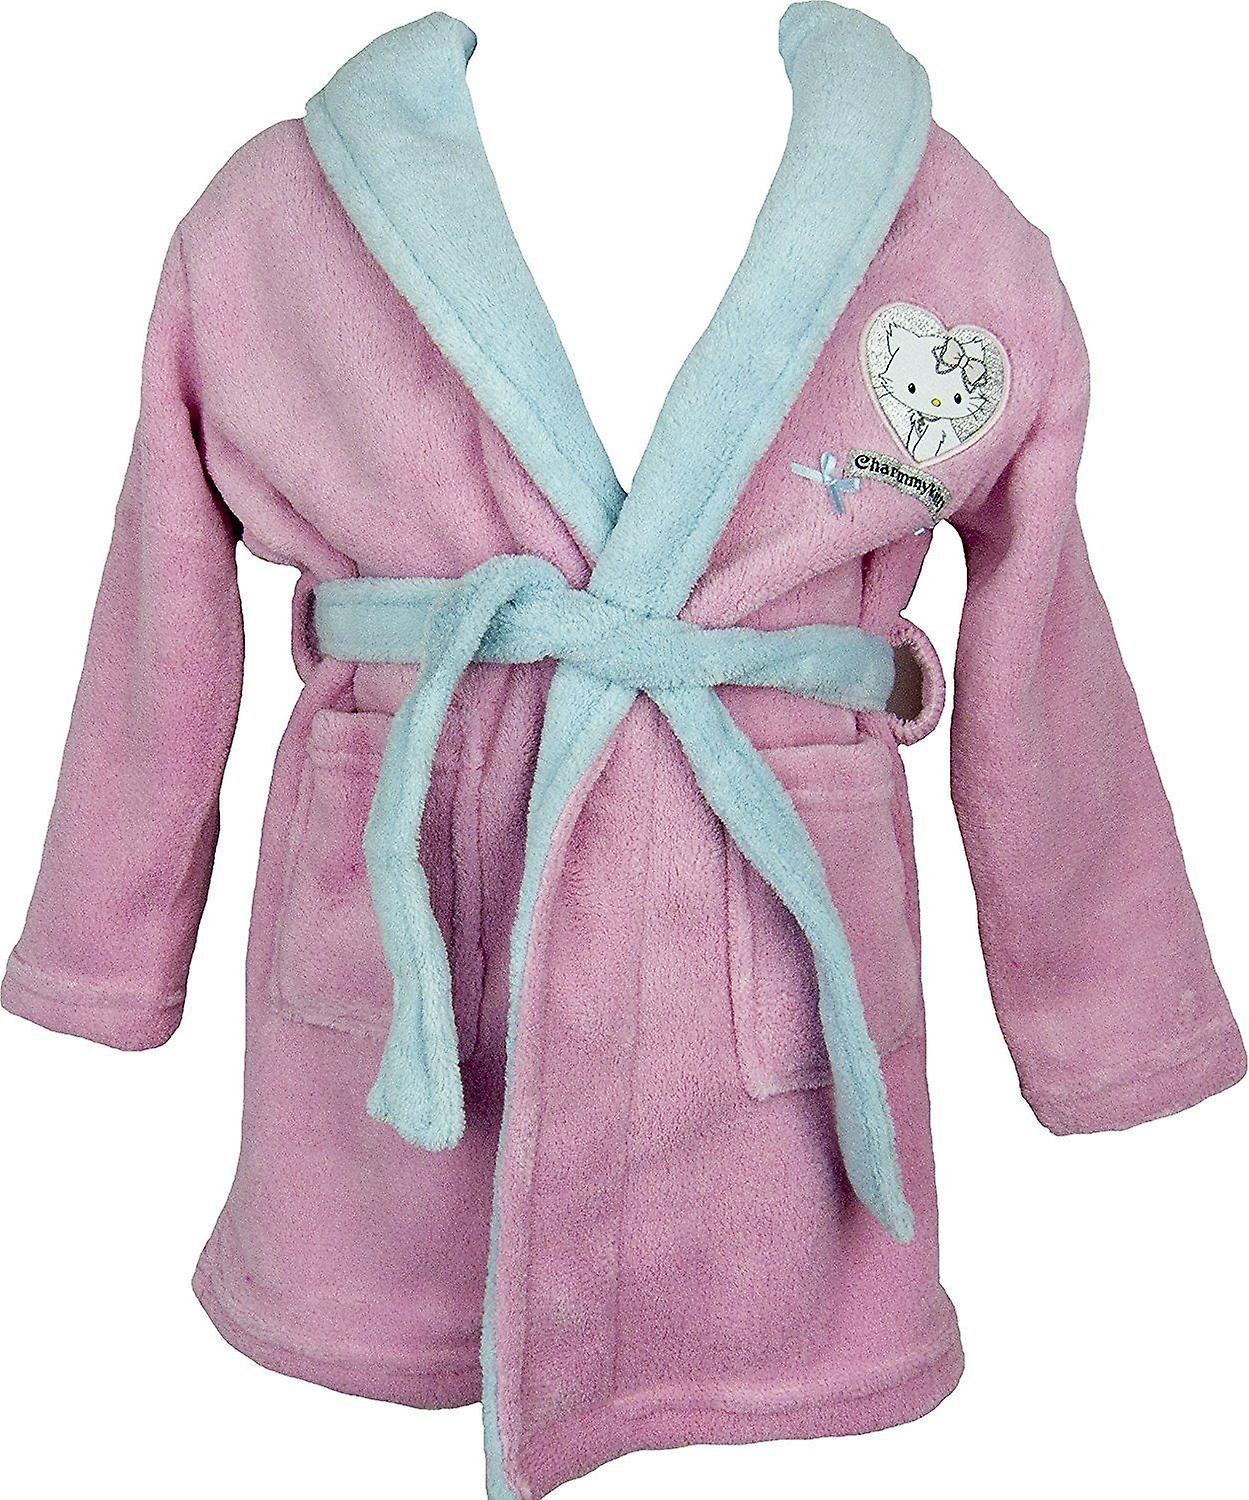 78dd3141d Charmmy Kitty Hello Kitty Girls Dressing Gown / Bathrobe | Fruugo